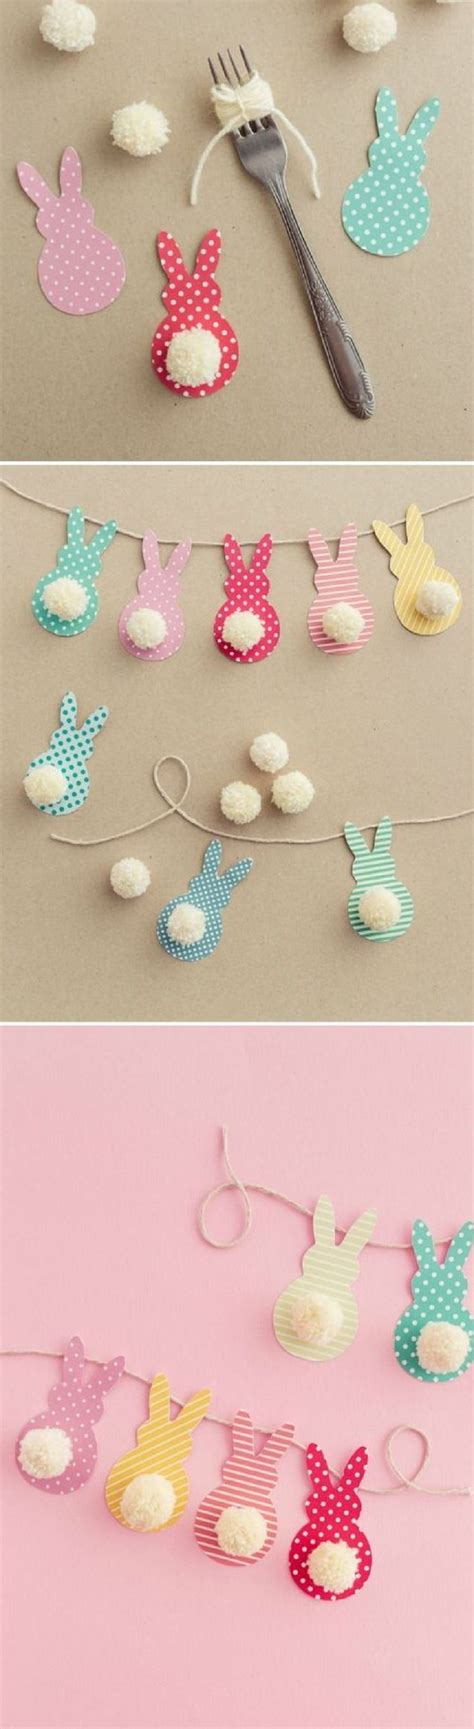 18 best images about easter on pinterest 13 year olds 18 eggstra special easter crafts that will make your